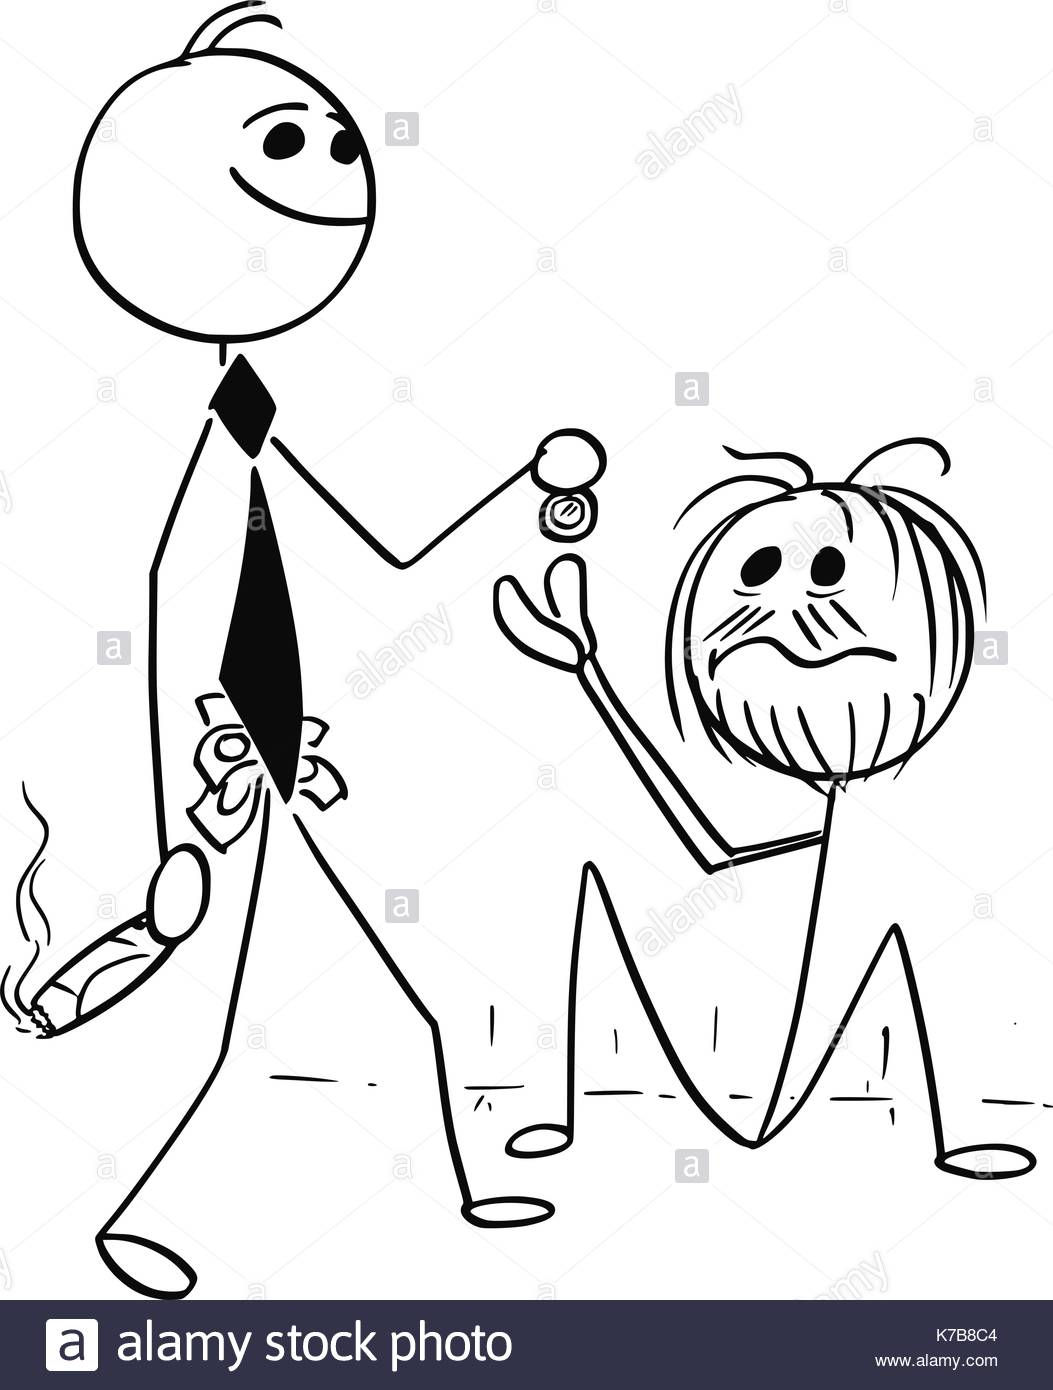 1053x1390 Cartoon Stick Man Illustration Of Smiling Rich Business Man Stock